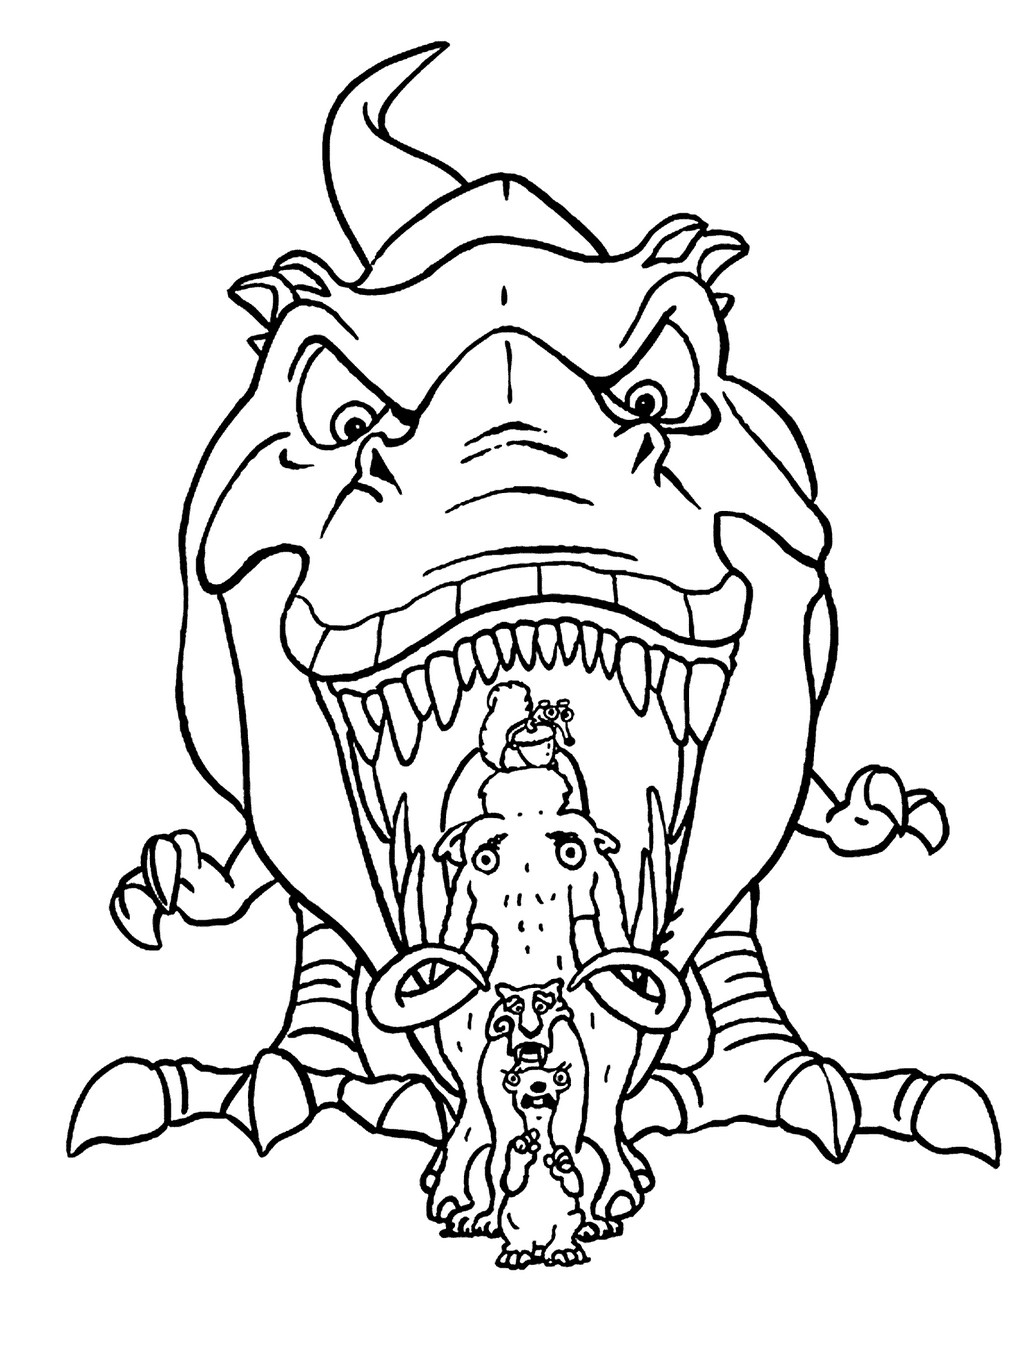 gertie dino from ice age coloring page